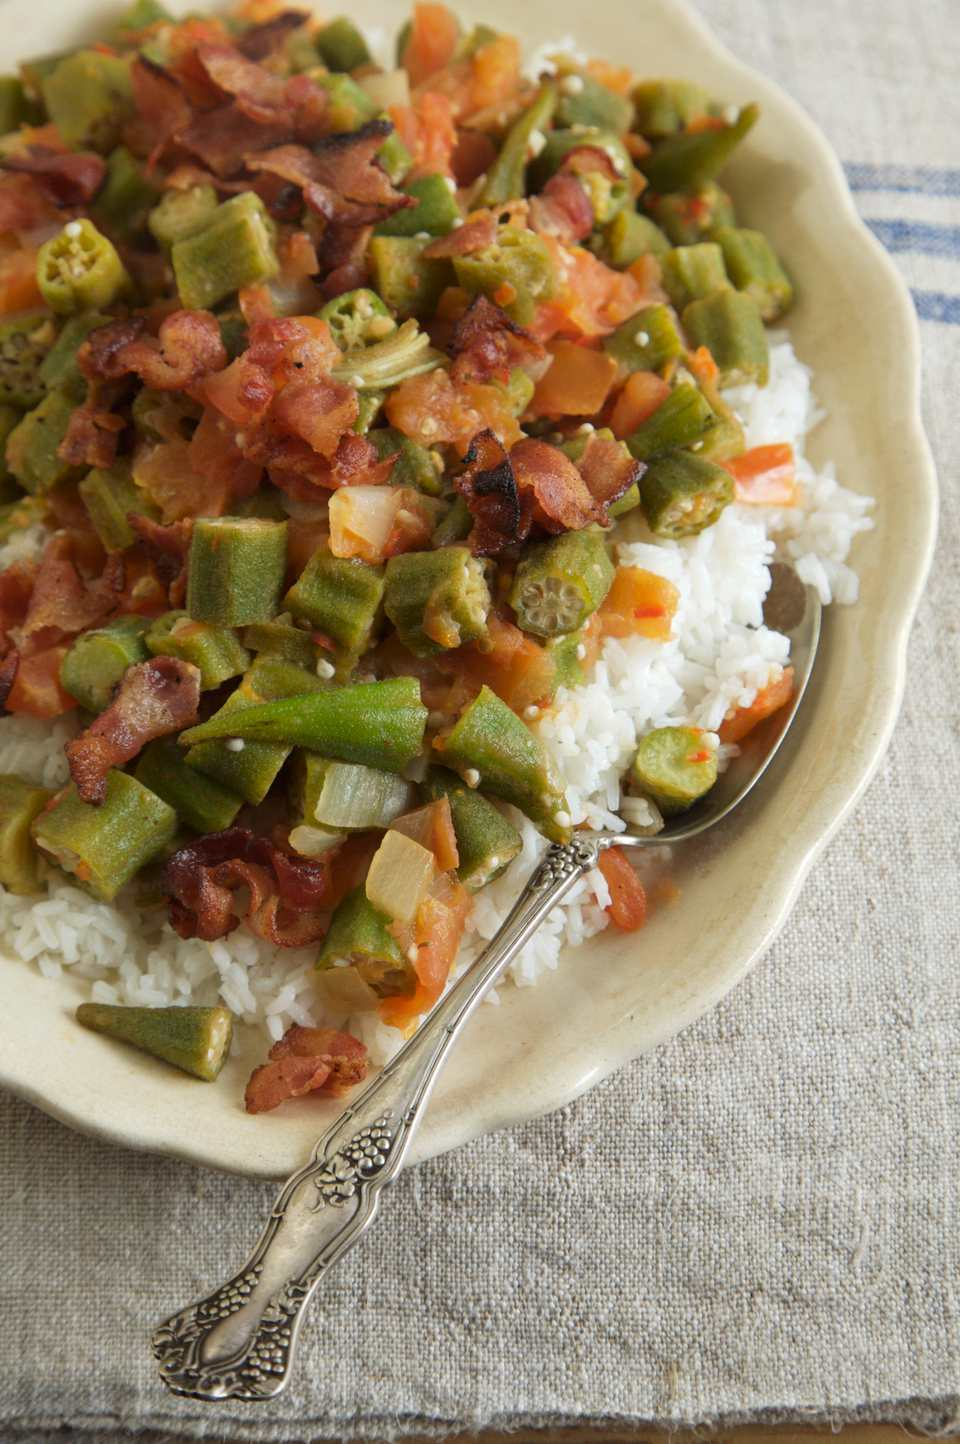 Okra and tomatoes on rice